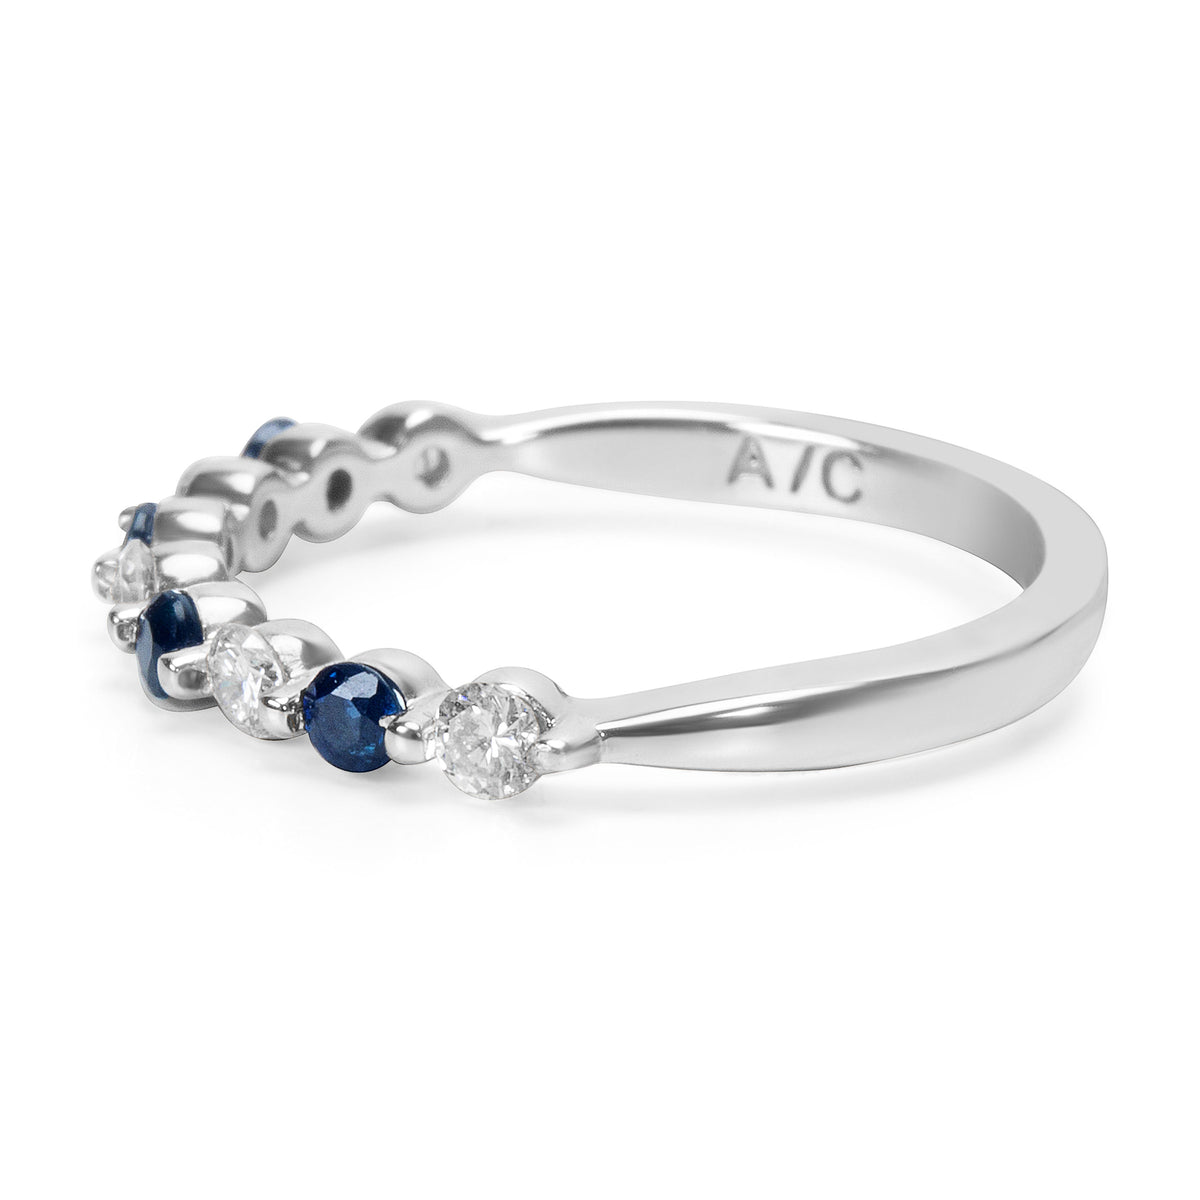 BRAND NEW Sapphire and Diamond Vintage Style Ring in 14K White Gold (0.26 CTW)